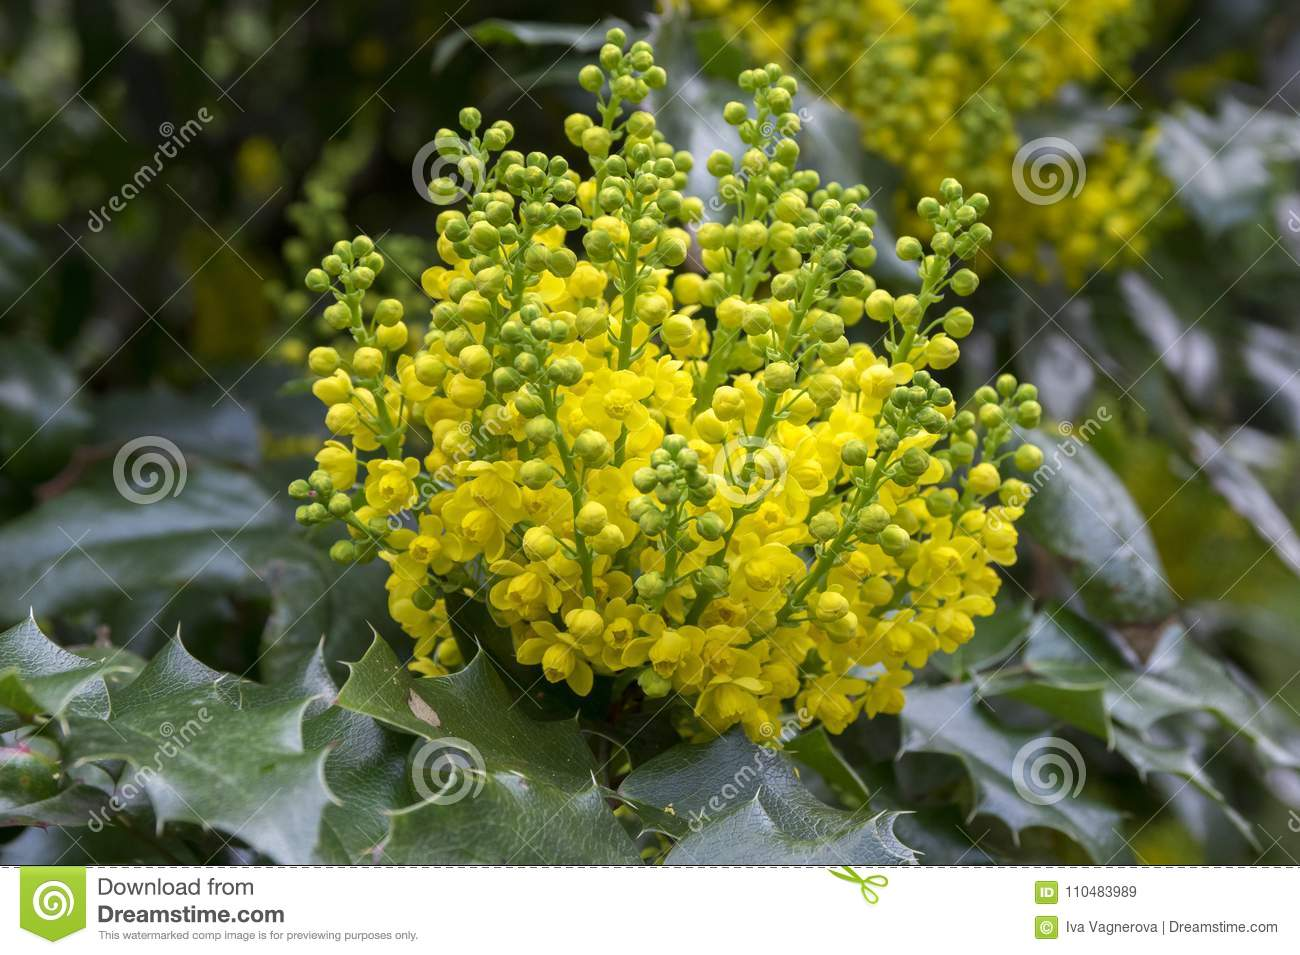 Mahonia aquifolium shrub with yellow flower stock image image of download mahonia aquifolium shrub with yellow flower stock image image of blossom blooming mightylinksfo